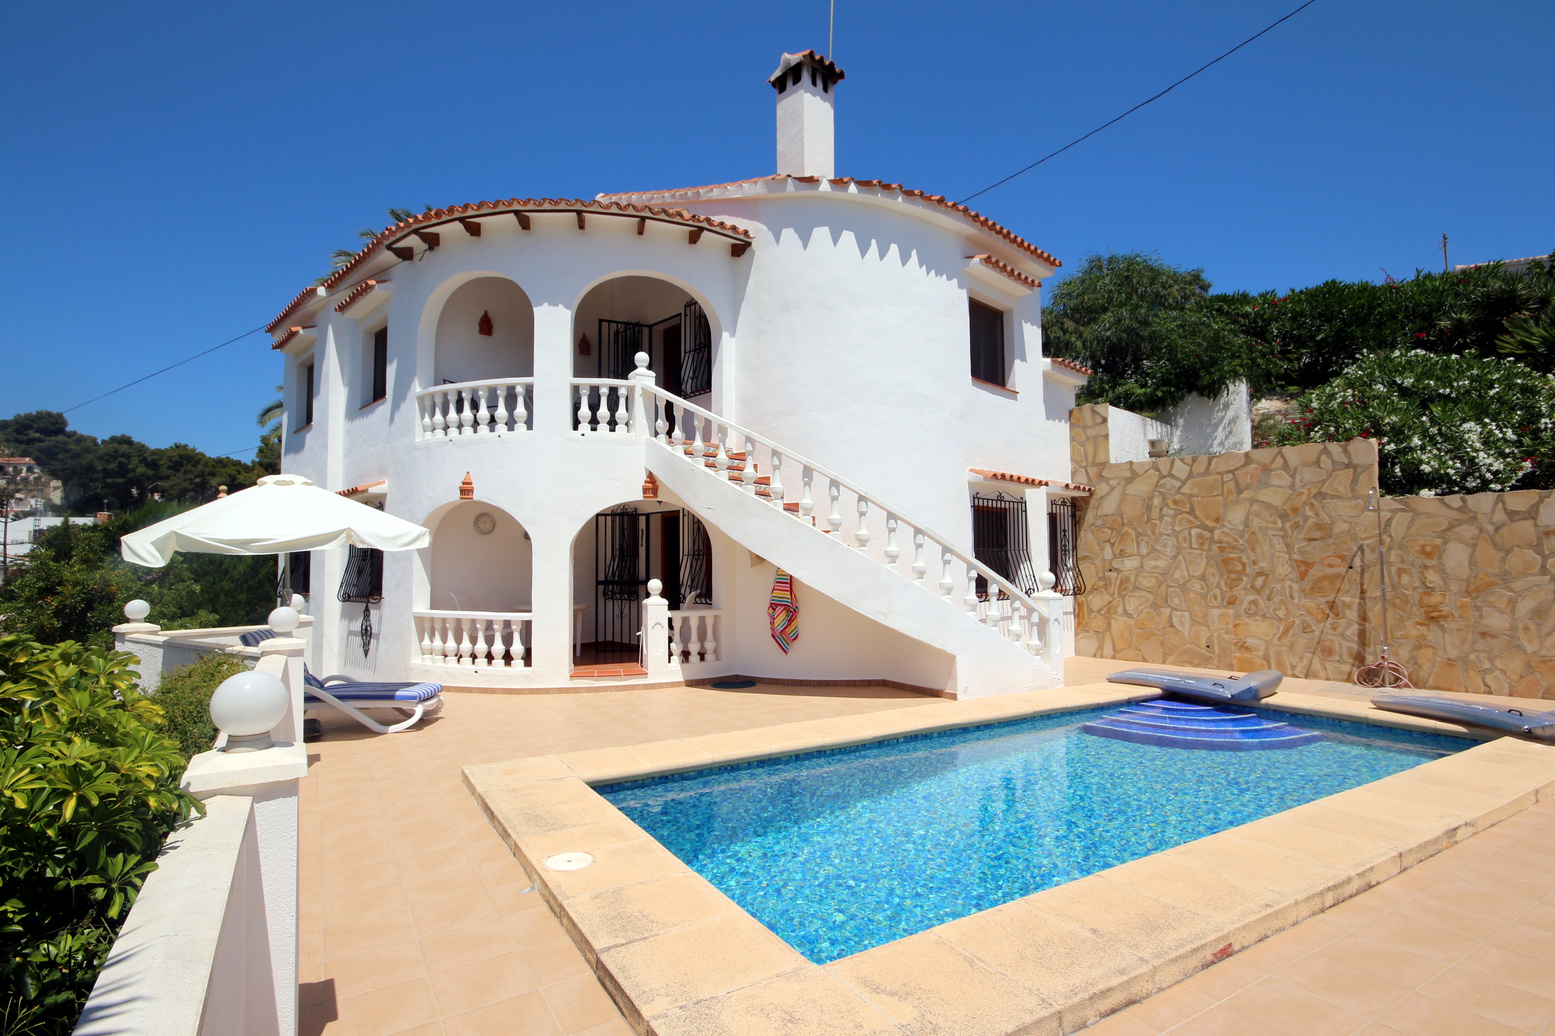 IMMACULATE THREE BEDROOM VILLA CLOSE TO THE SEA